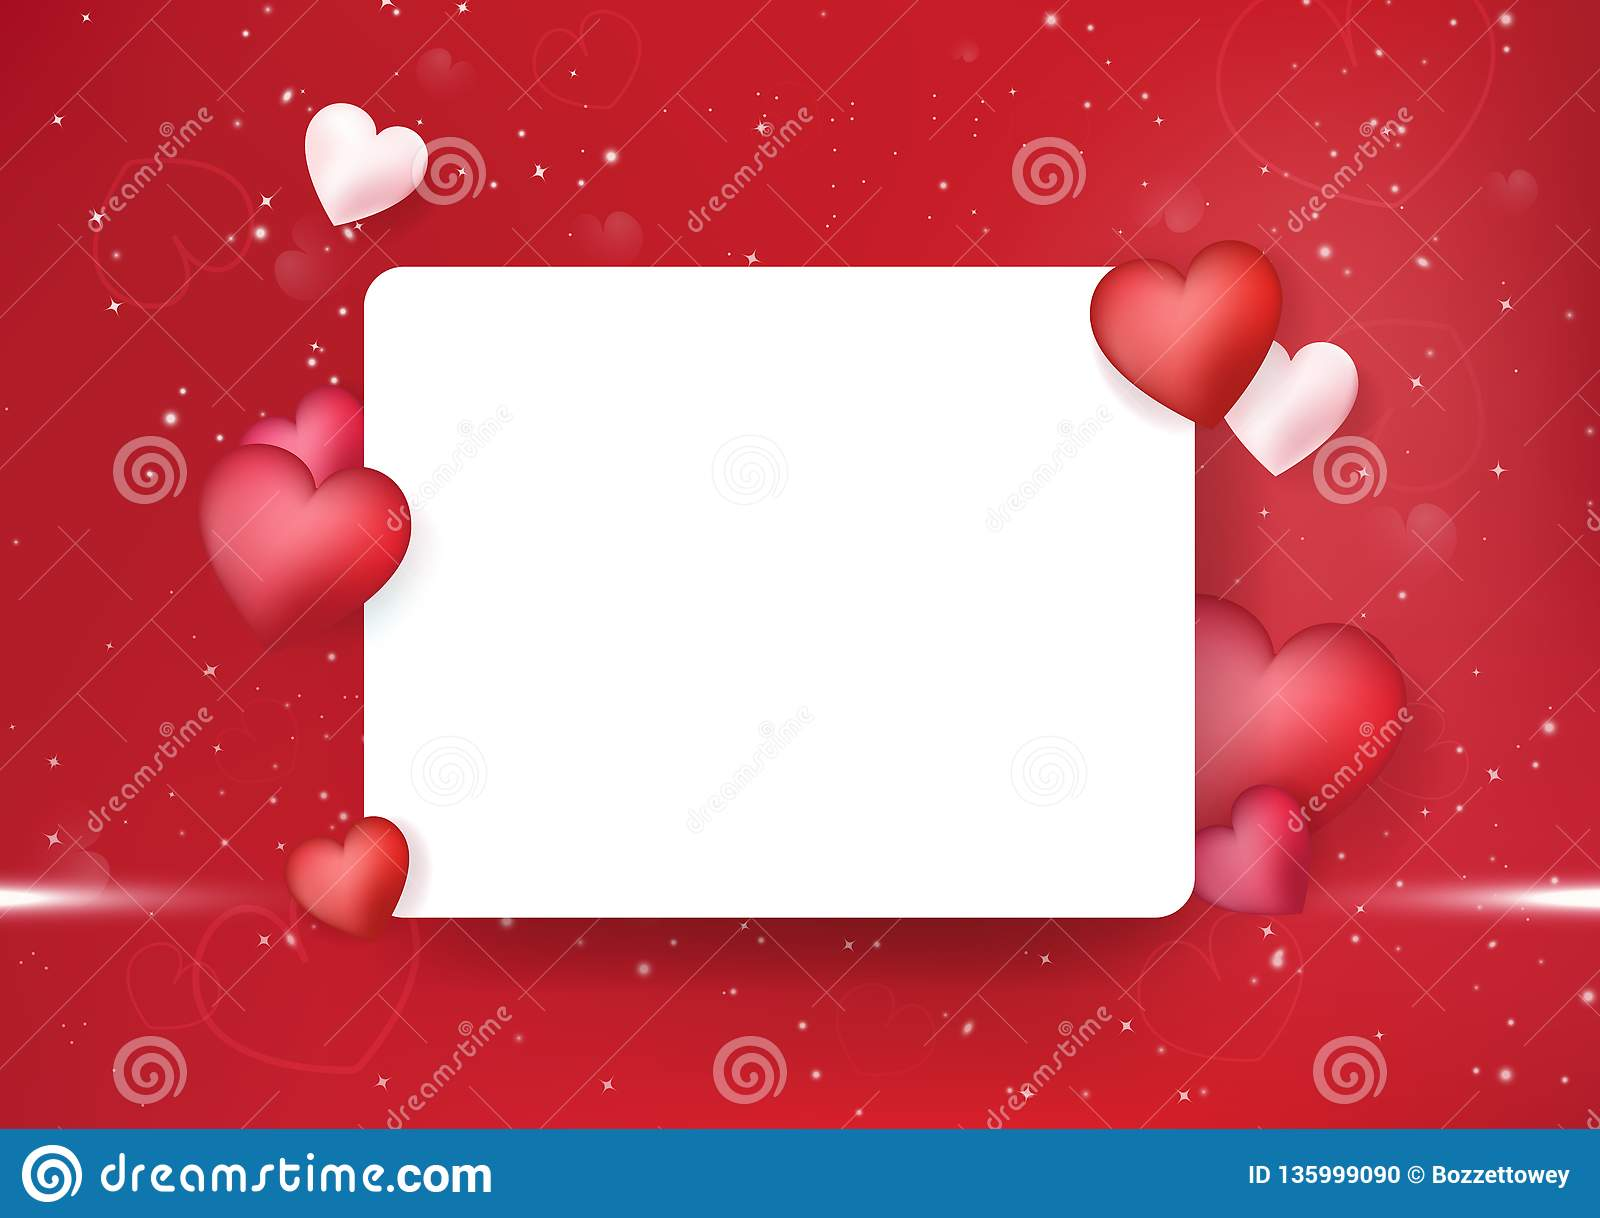 Valentines day postcard, invitation heart, decoration festive holiday luxury abstract background vector illustration